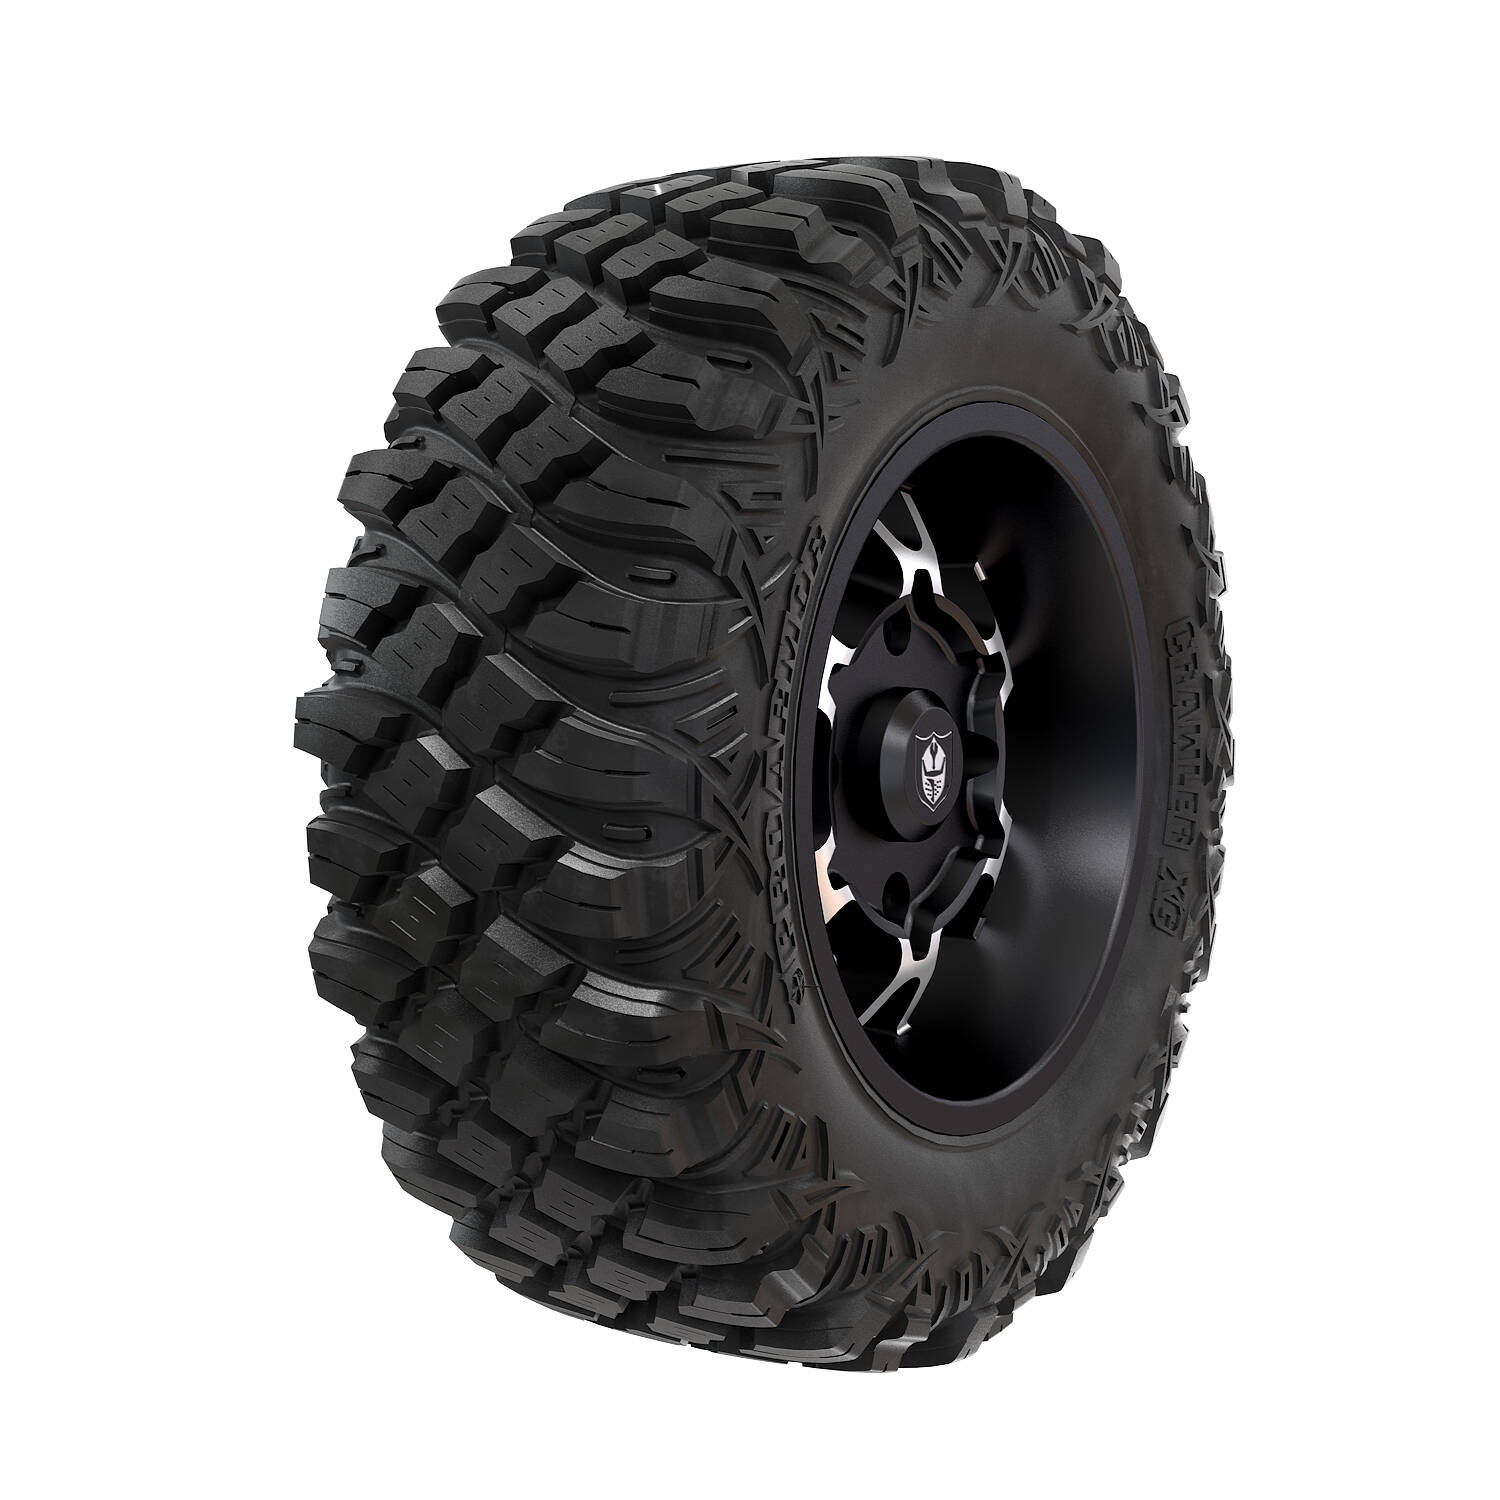 Pro Armor® Wheel & Tire Set: Cyclone - Accent & Crawler XG - 28""